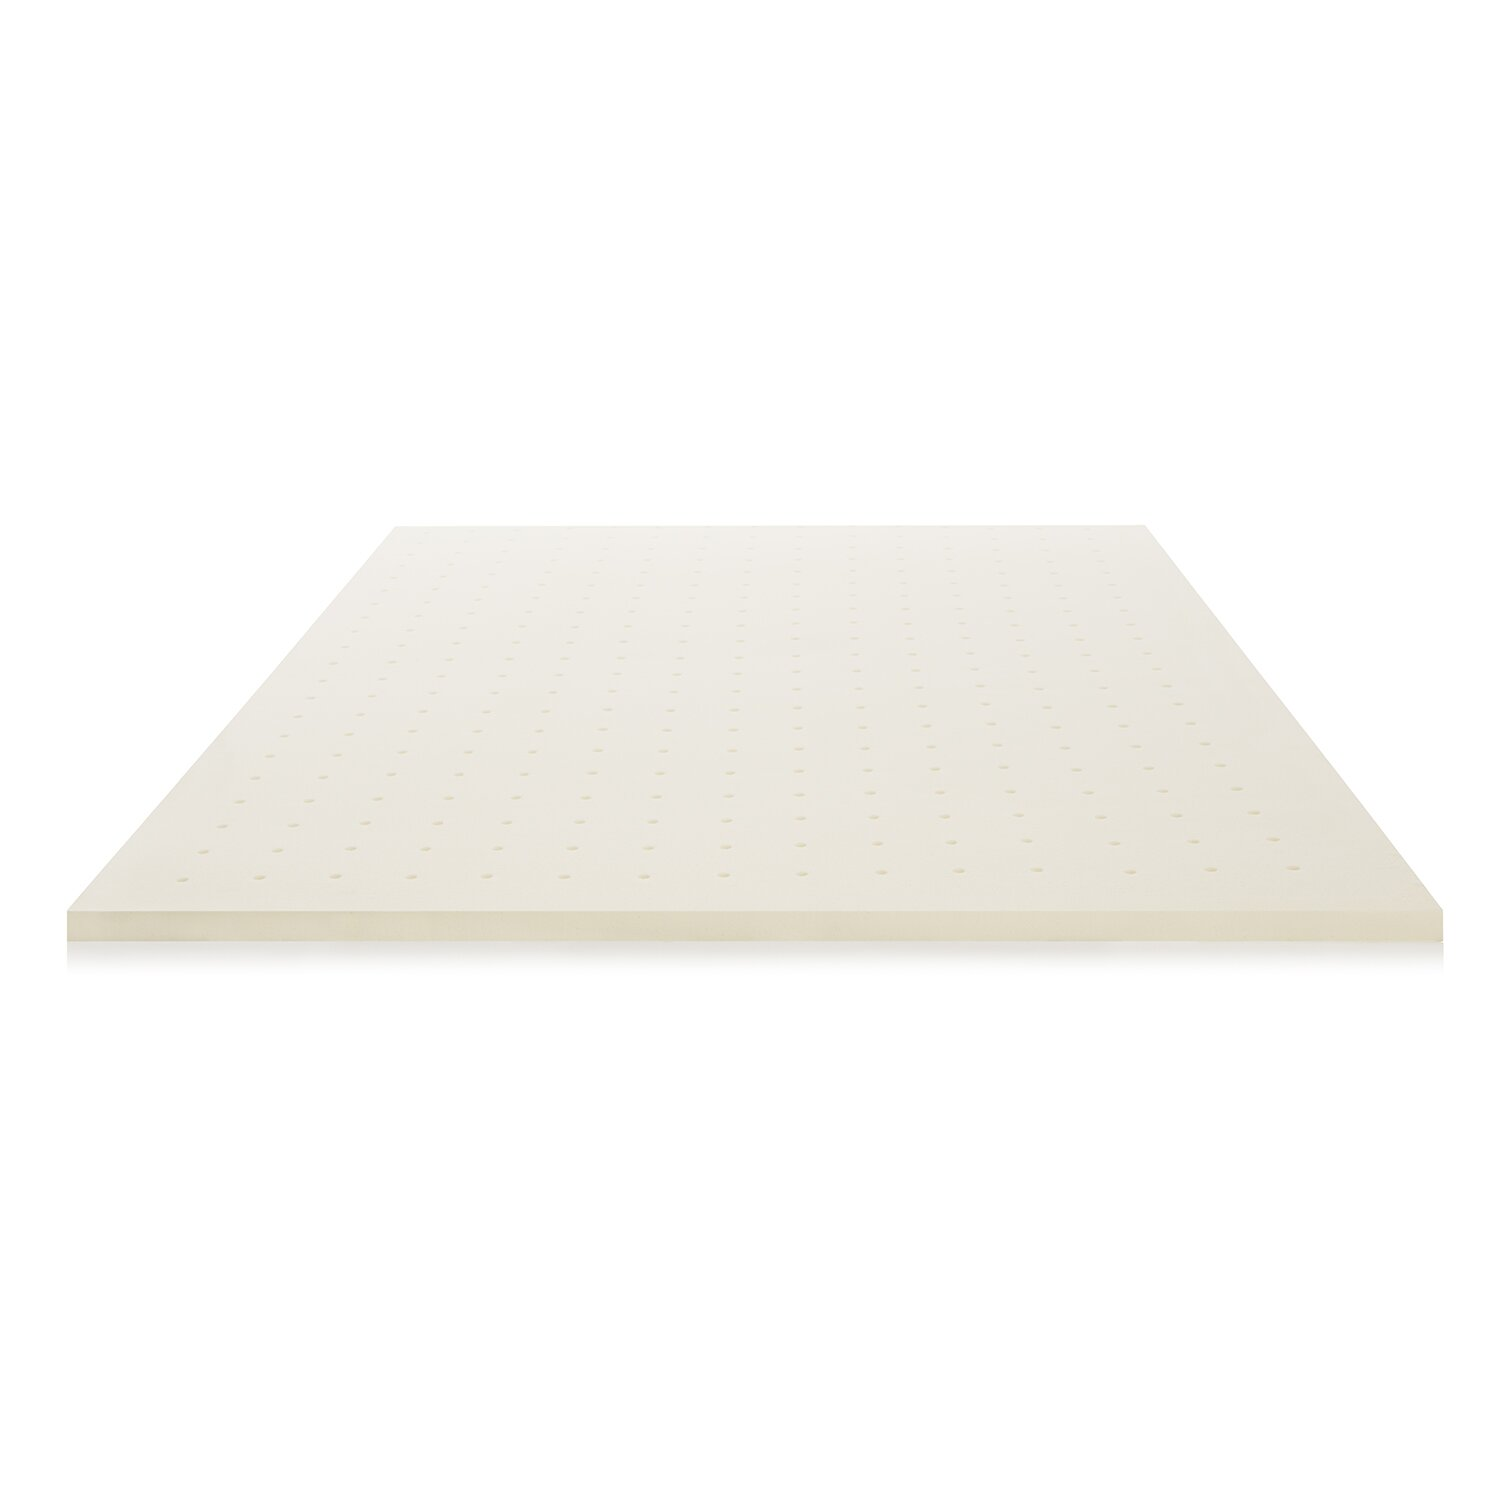 Lucid memory foam mattress topper reviews wayfair Top rated memory foam mattress